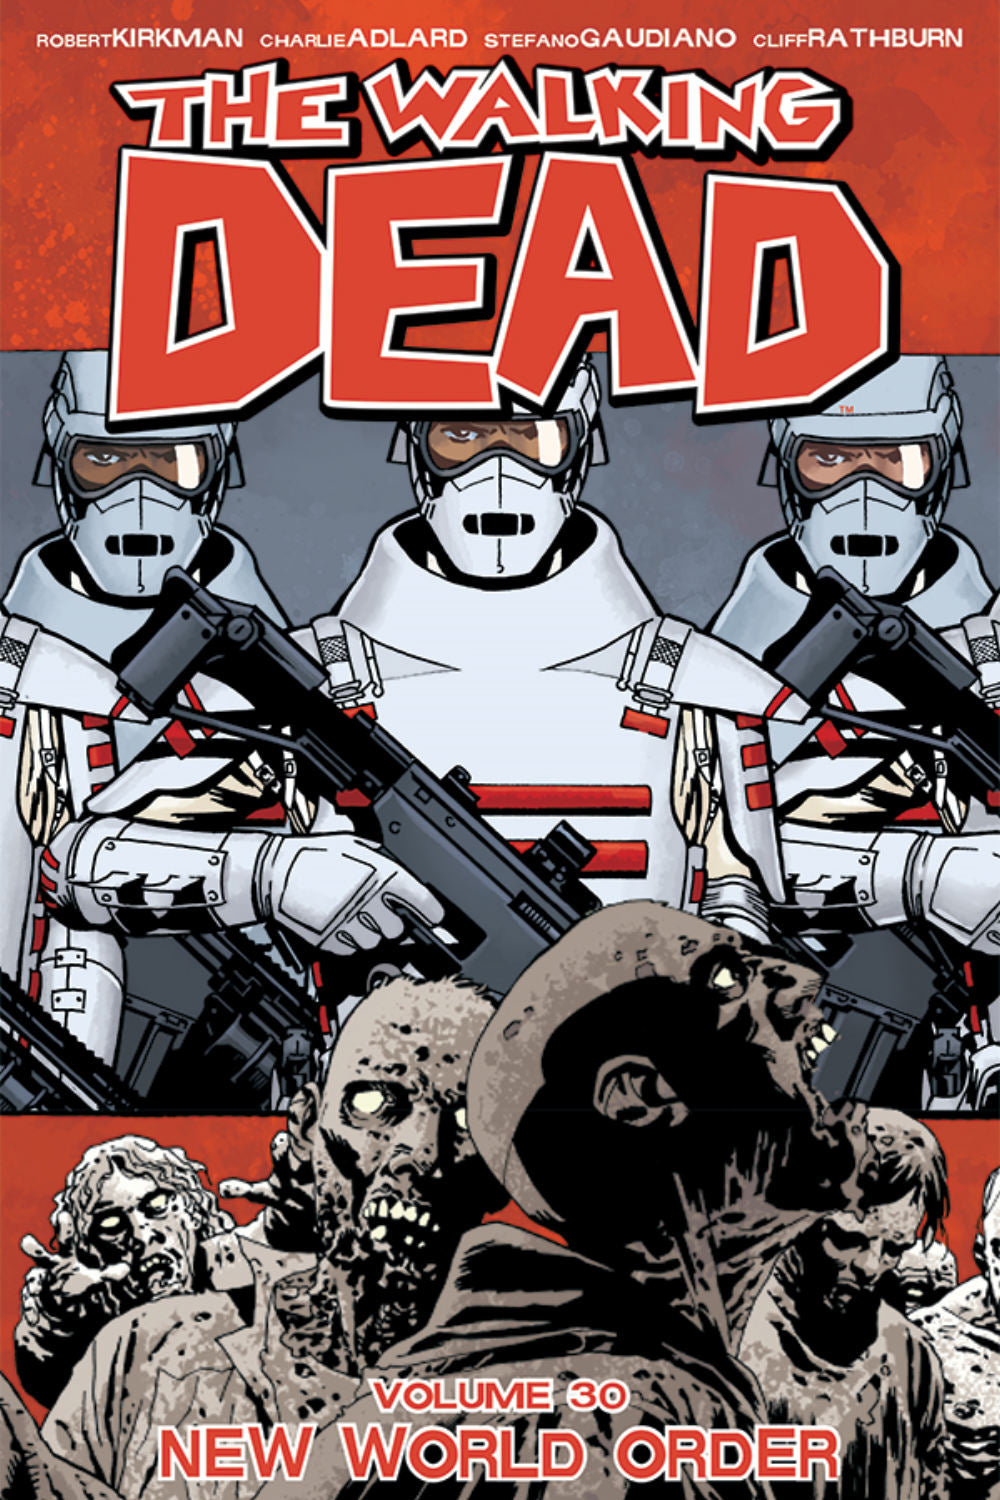 WALKING DEAD TP VOL 30 NEW WORLD ORDER (MR) | Game Master's Emporium (The New GME)